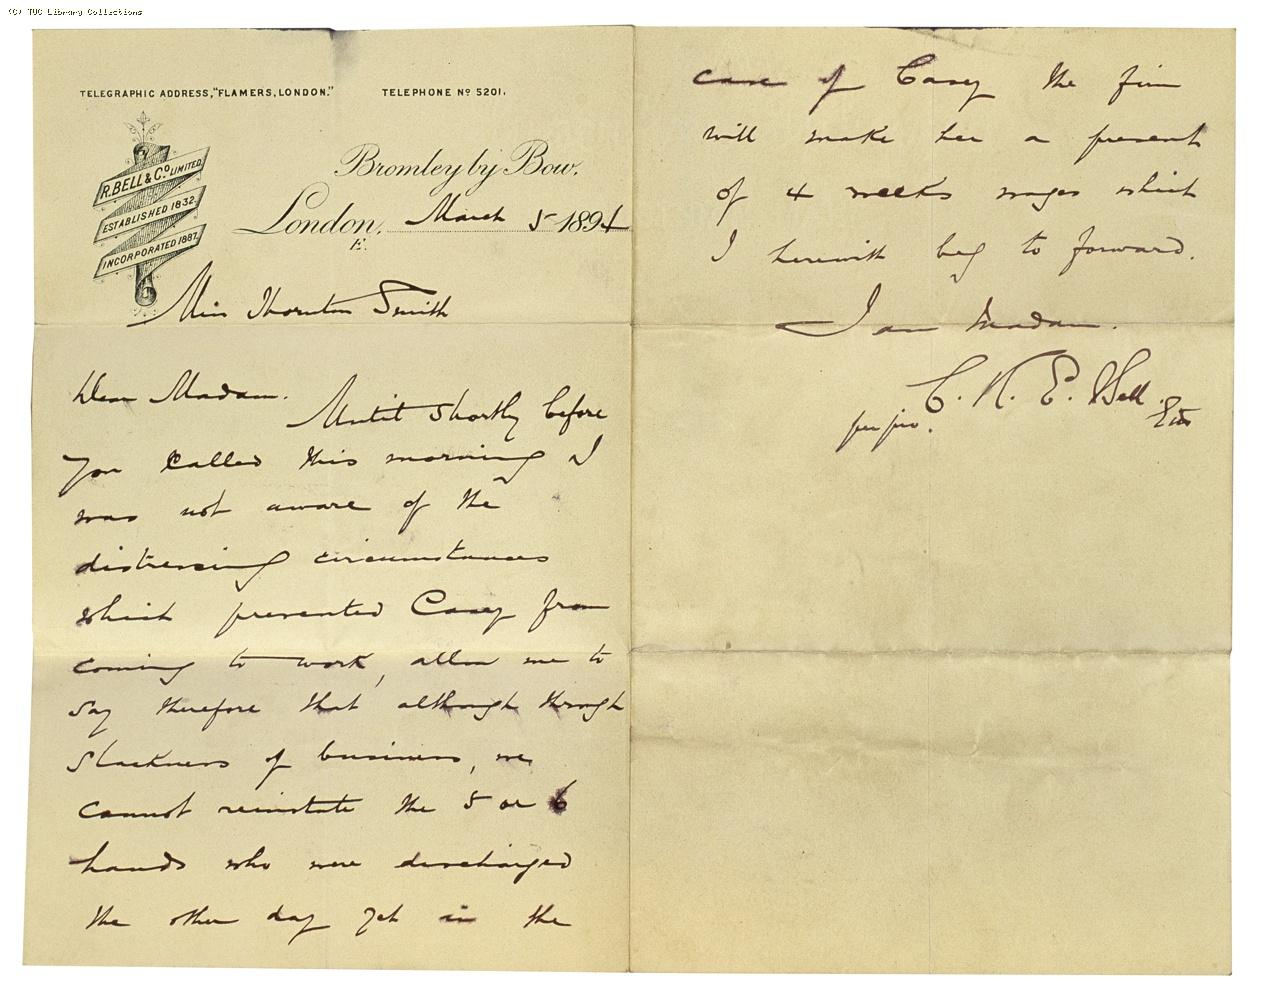 Letter from Charles Bell to Miss Thornton Smith re: dismissal case [Casey] 5 March 1894